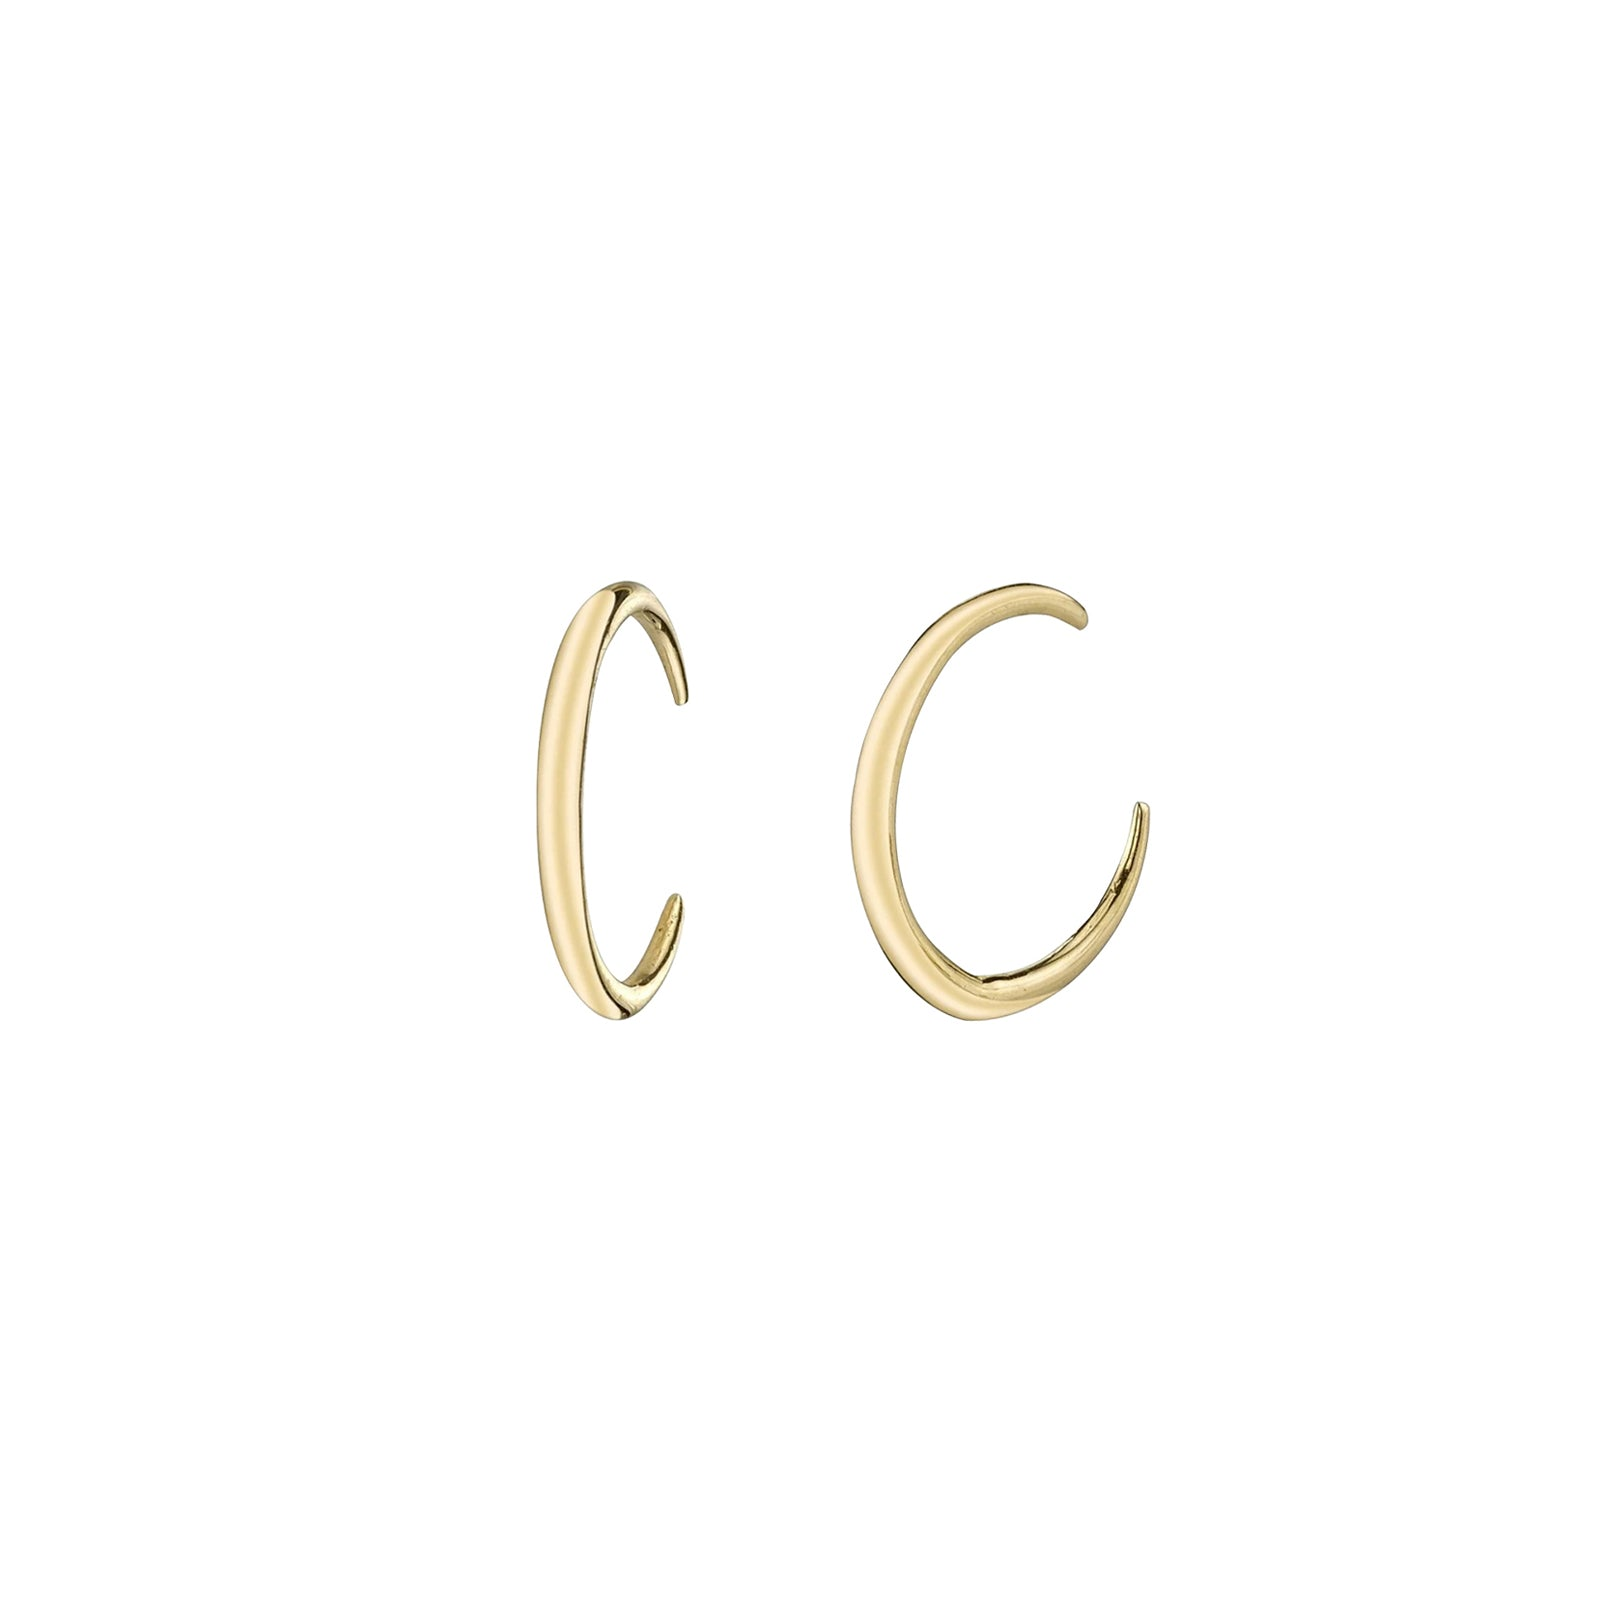 Gabriela Artigas & Company Mini Rising Tusk Earrings - Yellow Gold - Earrings - Broken English Jewelry